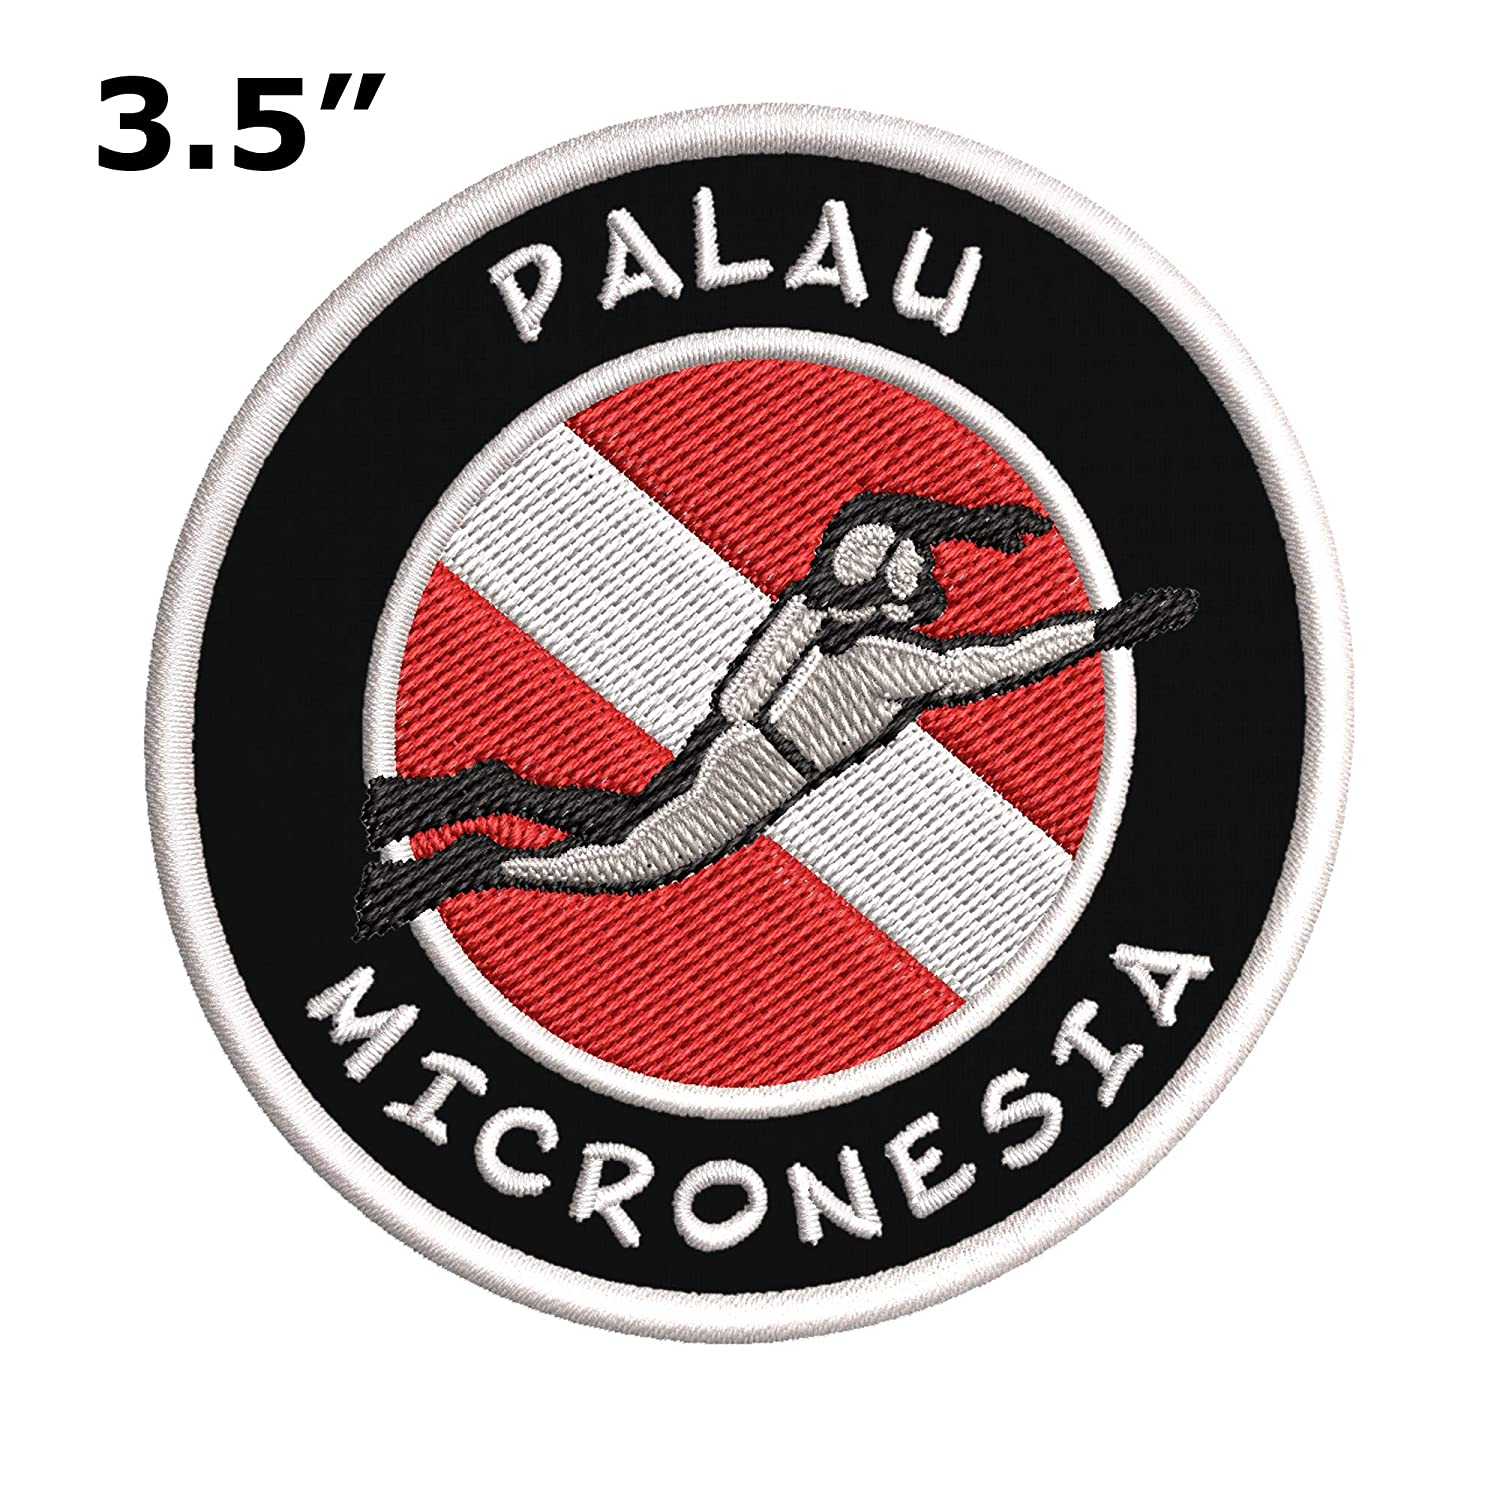 Scuba Diver Flag Patch Palau Micronesia Iron//Sew-on Embroidered Fabric Badge Diving Dive Vacation Souvenir